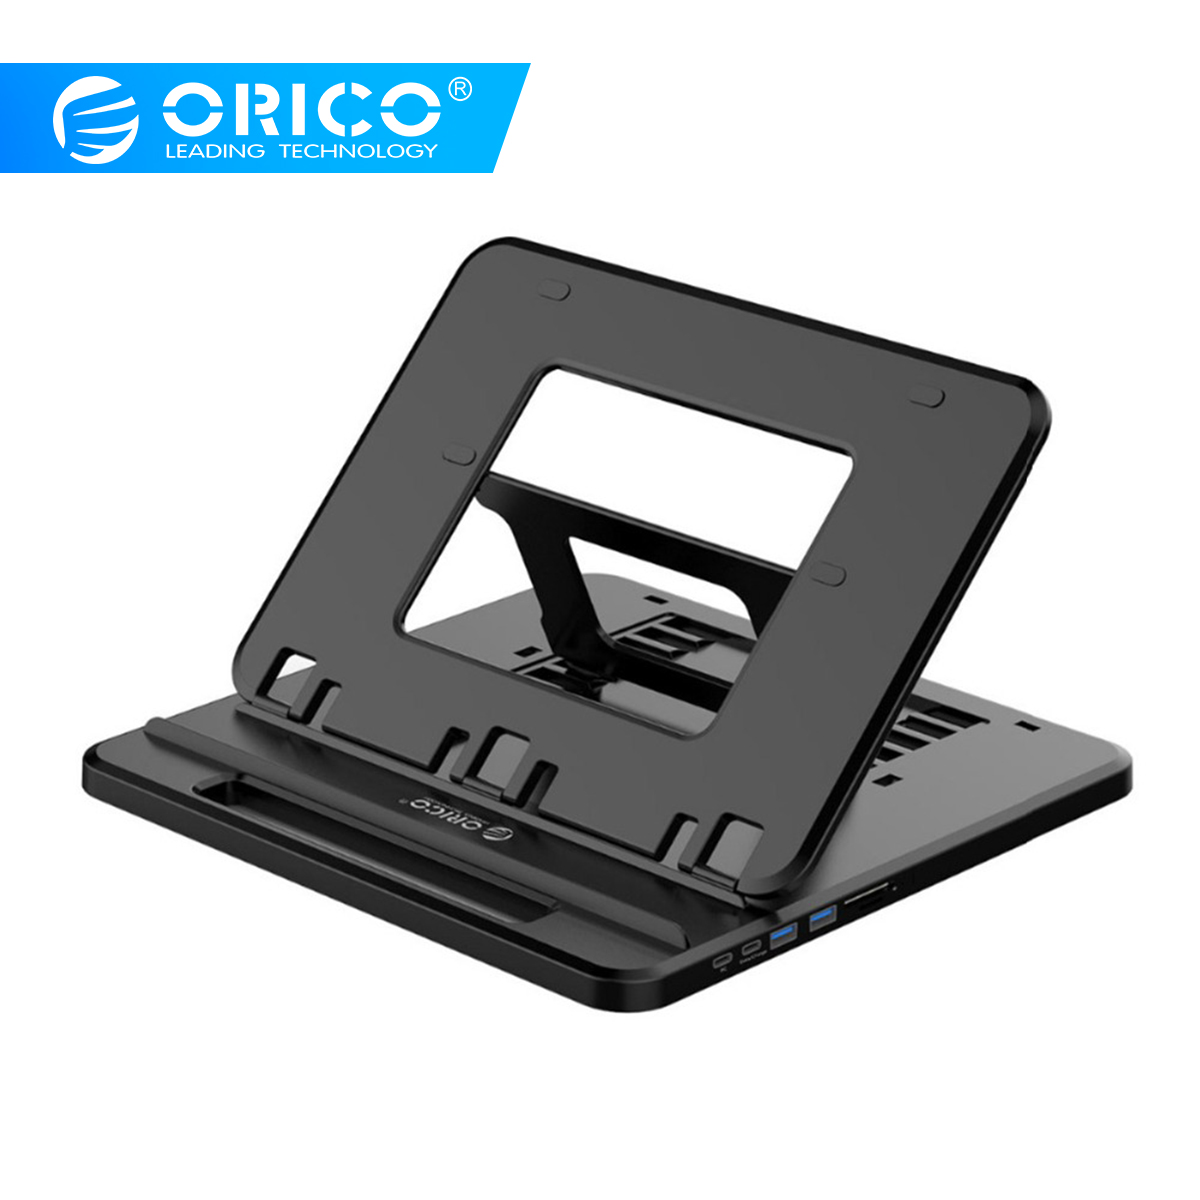 ORICO Tablet Laptop Holder Stand Desk Holder Office For Phone Charge Stand For iPhone Tablets Stand